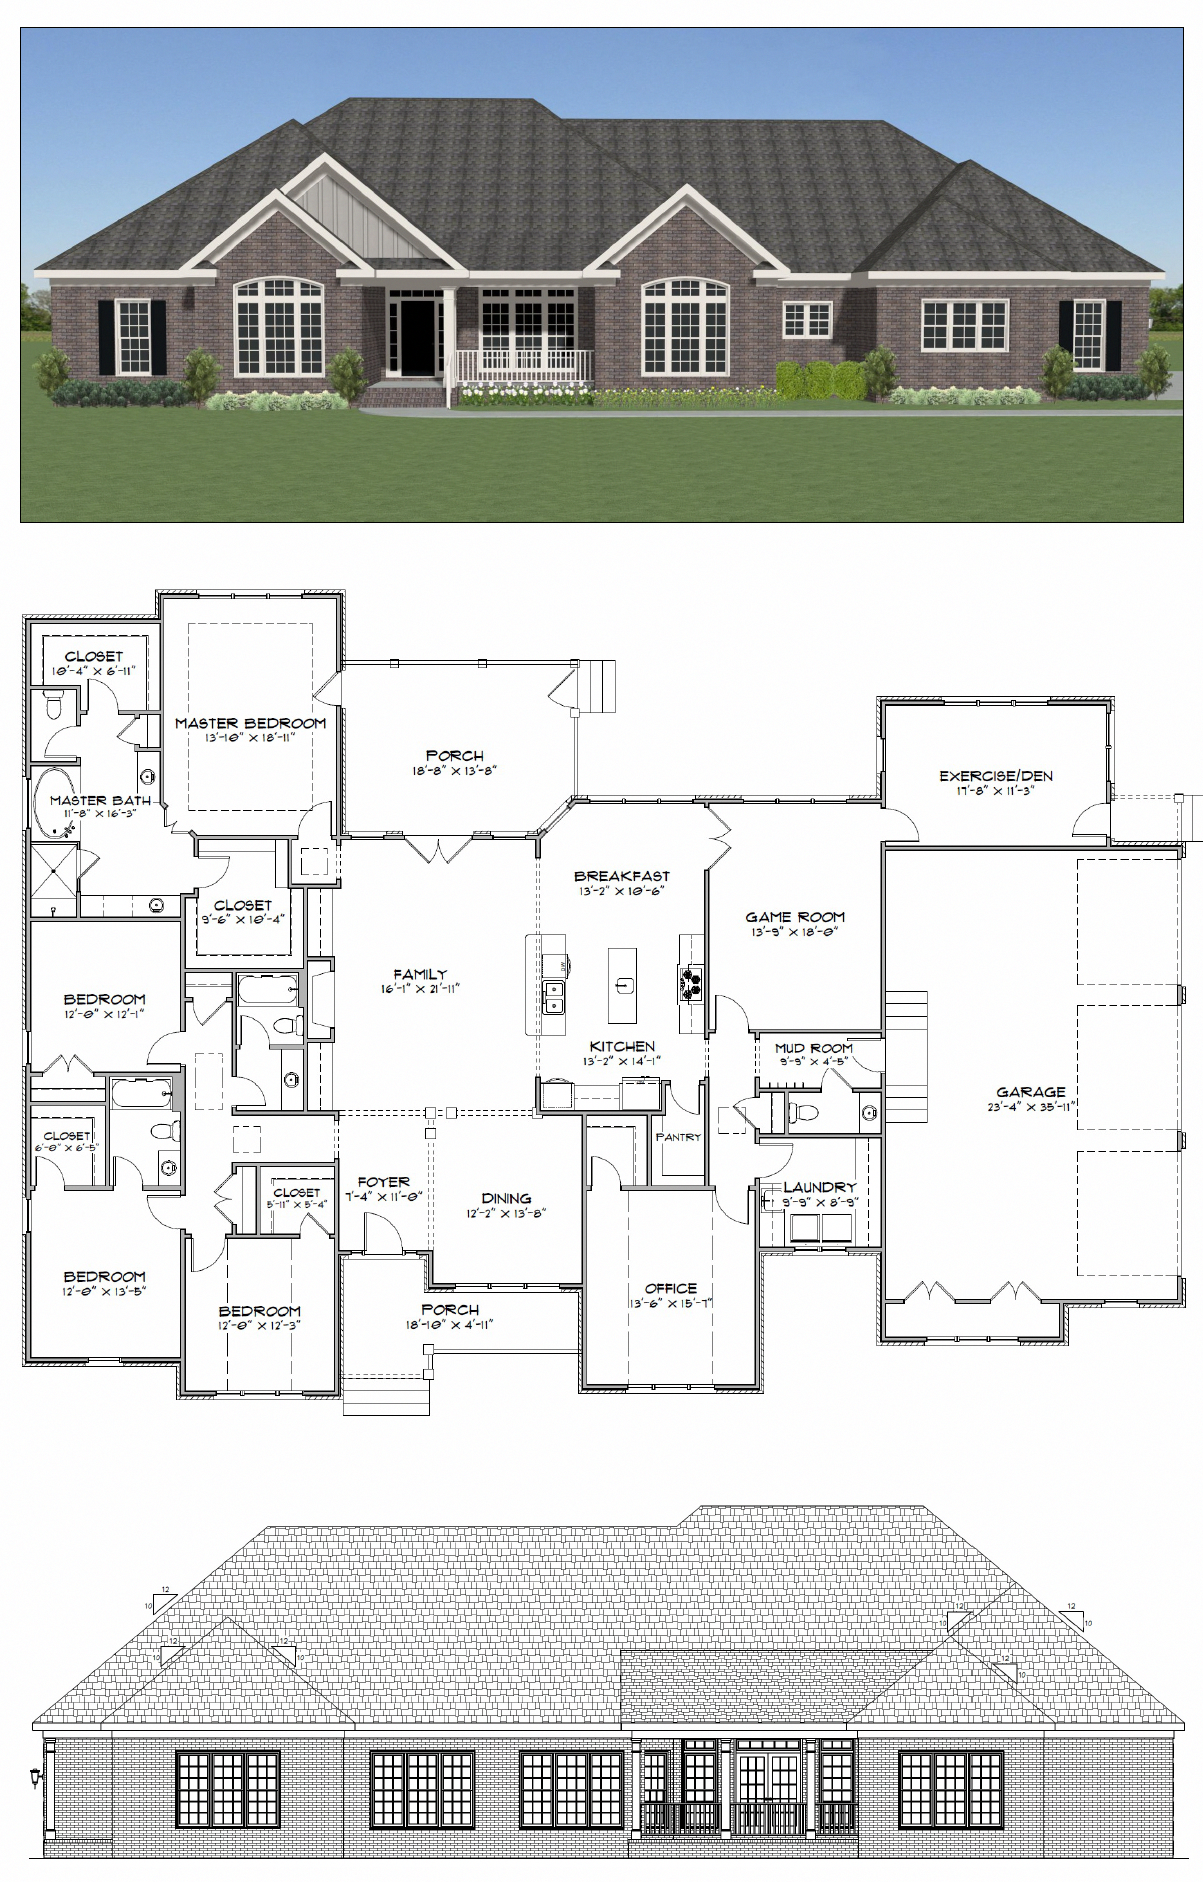 How To Choose The Right Boat Plan To Fit Your Needs New House Plans Floor Plans 4 Bedroom